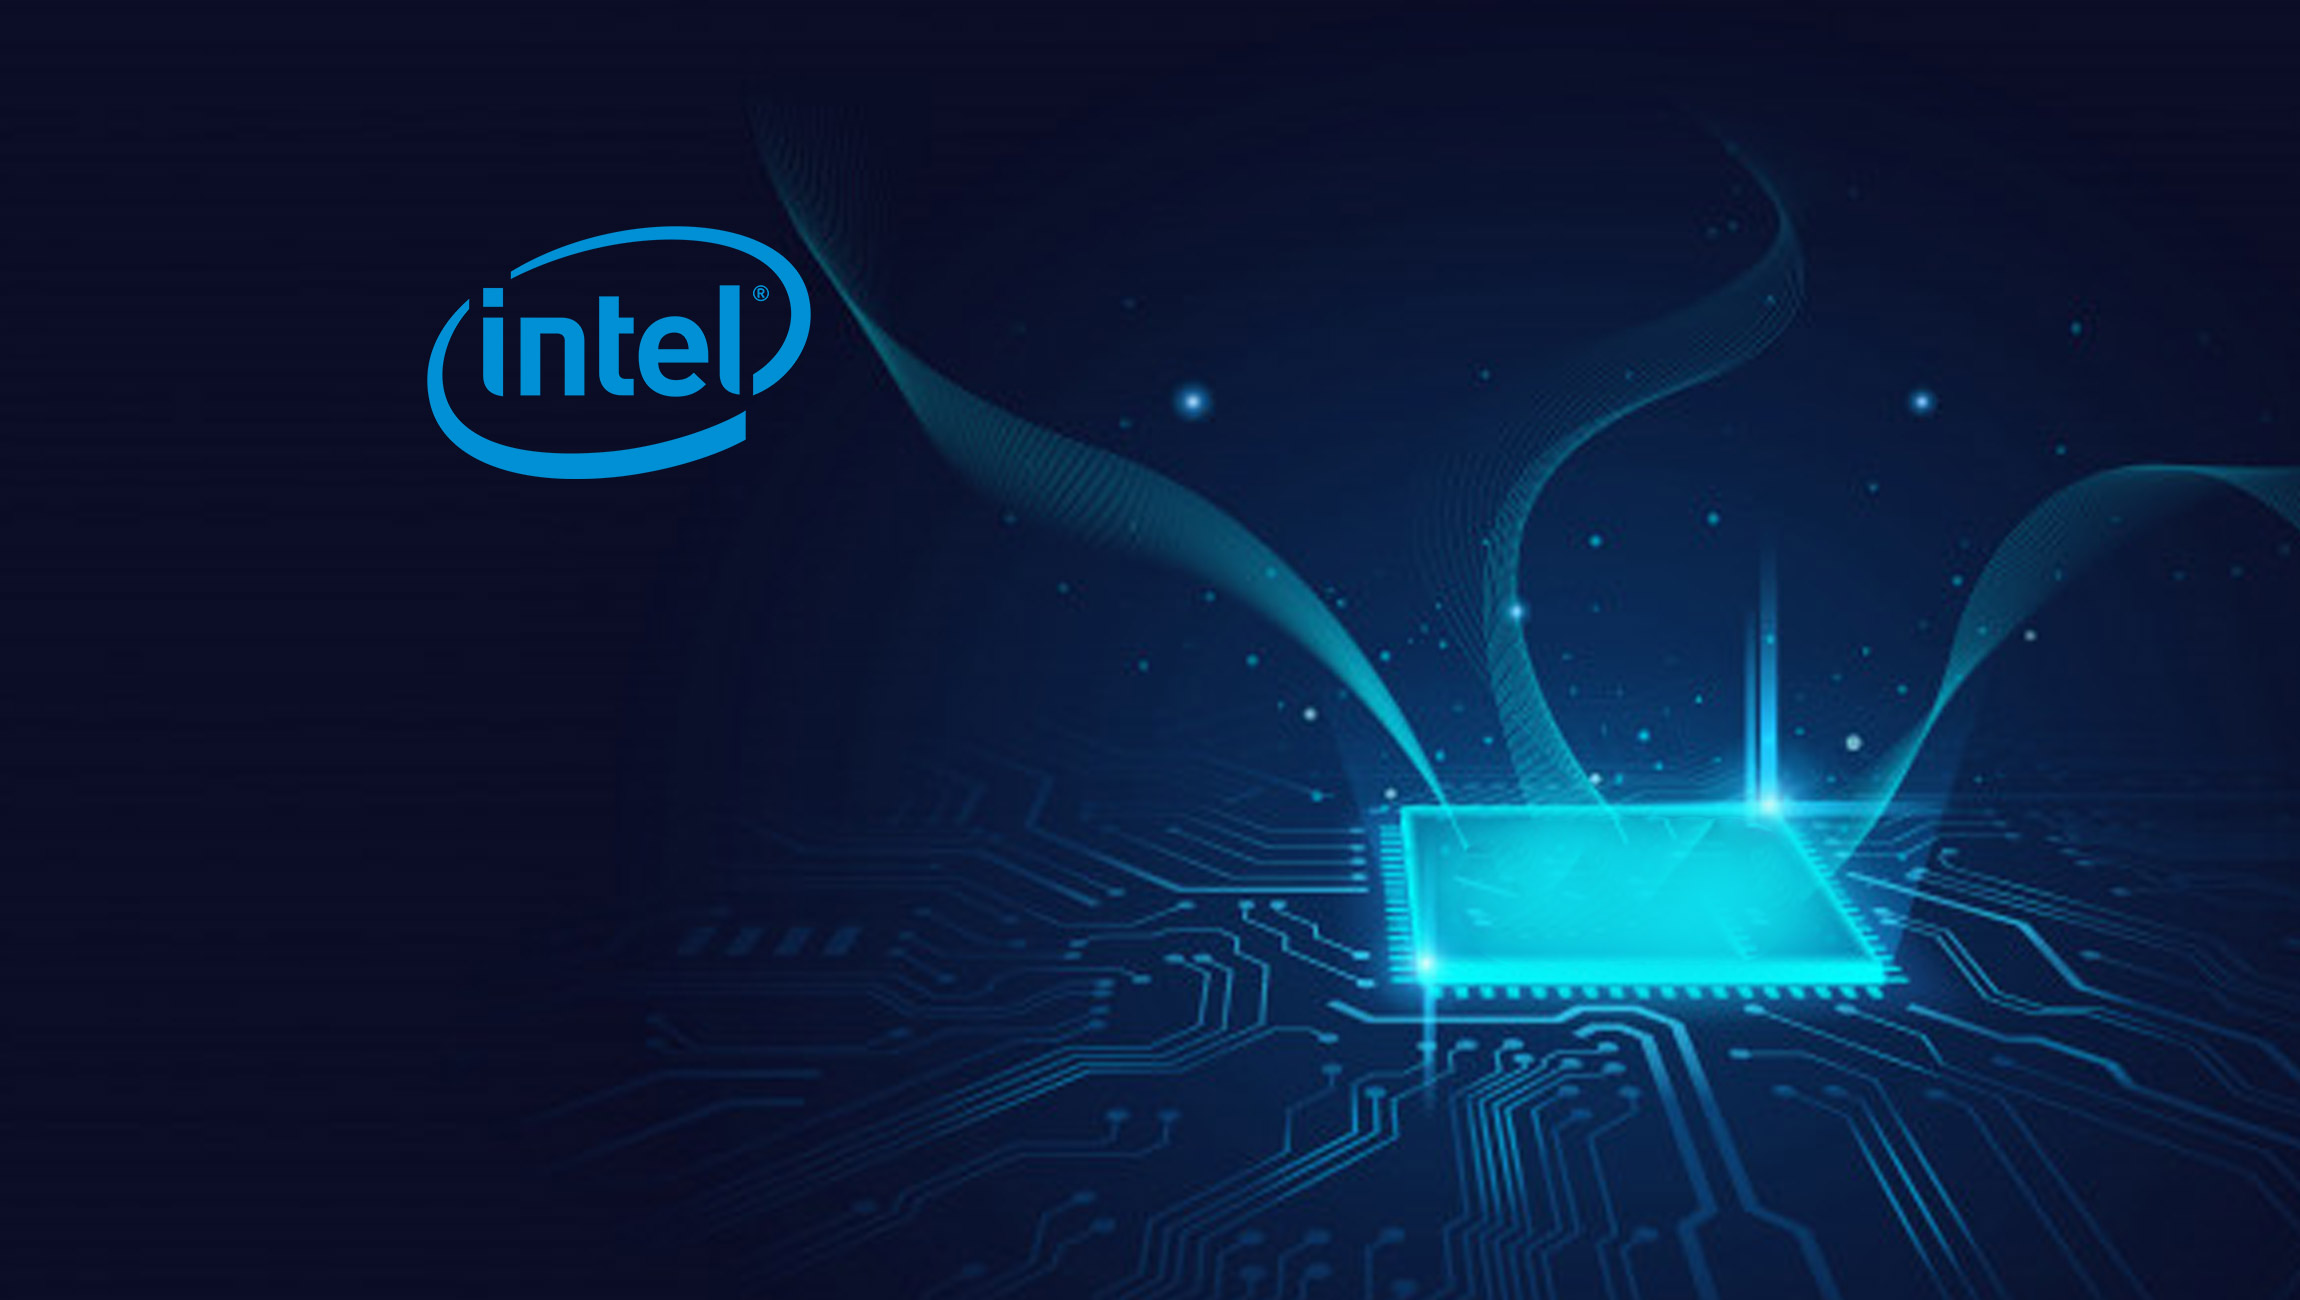 Intel Expands 5G Network Infrastructure Offerings in a $25B Market